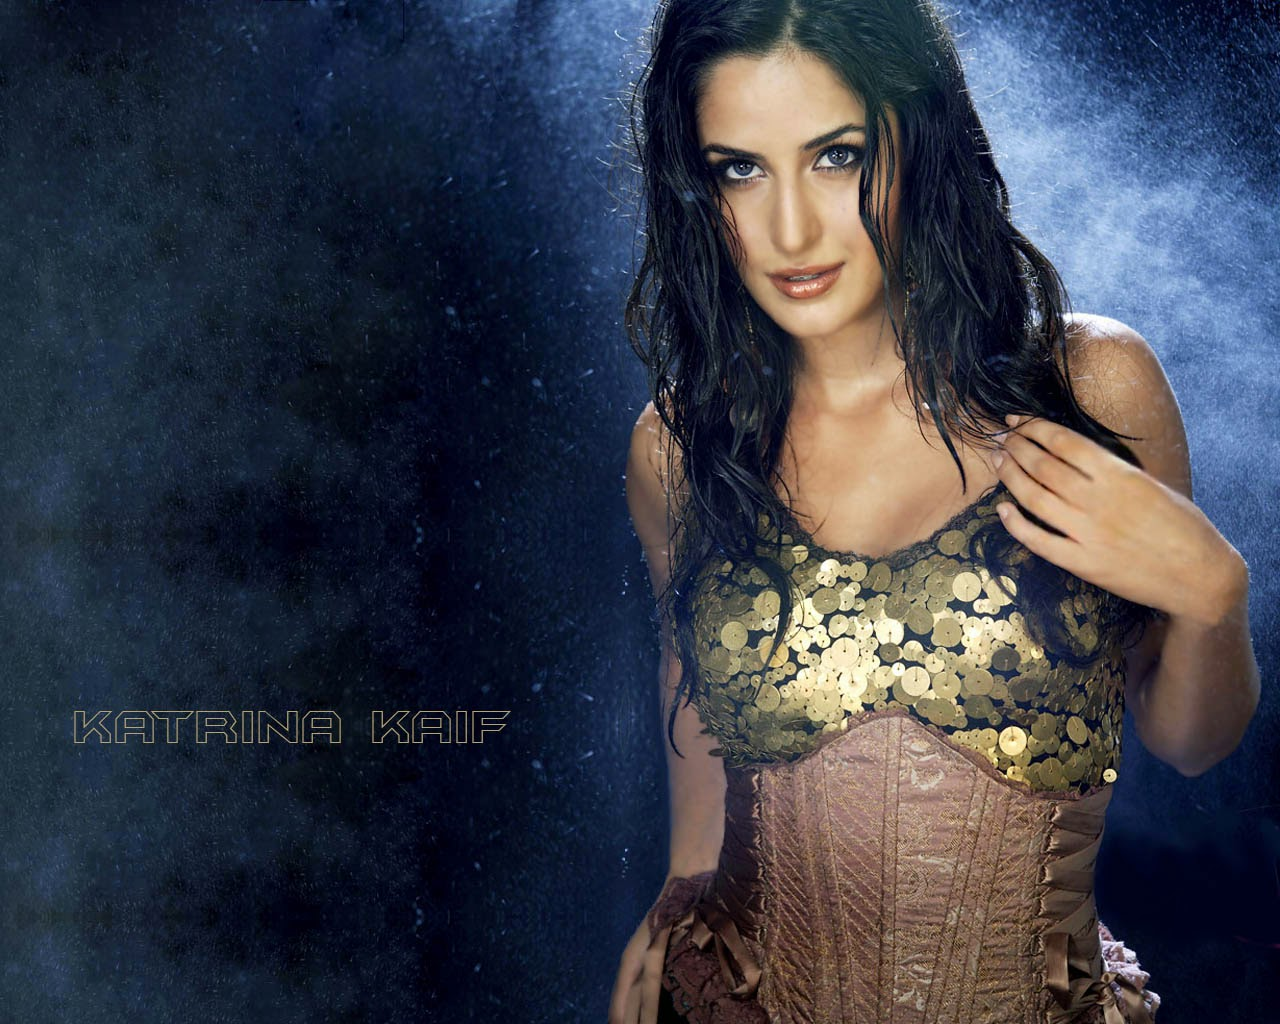 hd wallpaper gallery: katrina kaif top 10 hd wallpaper